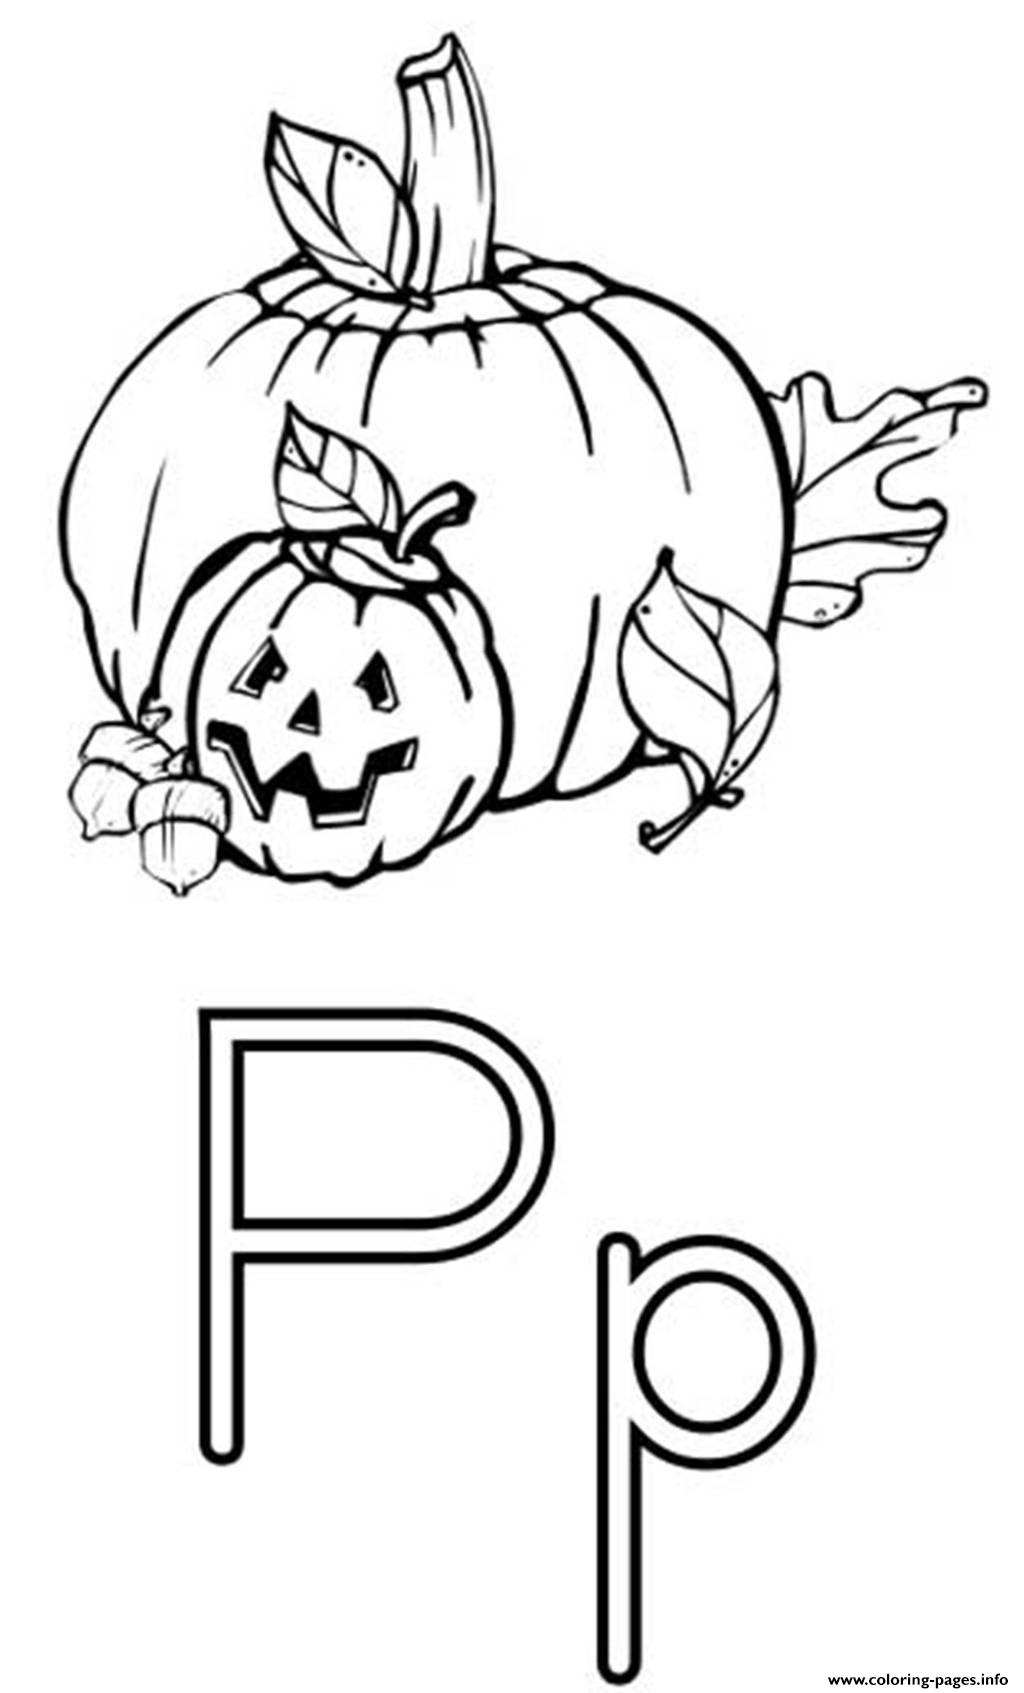 Pumpkin Free Alphabet S13b1 Coloring Pages Printable